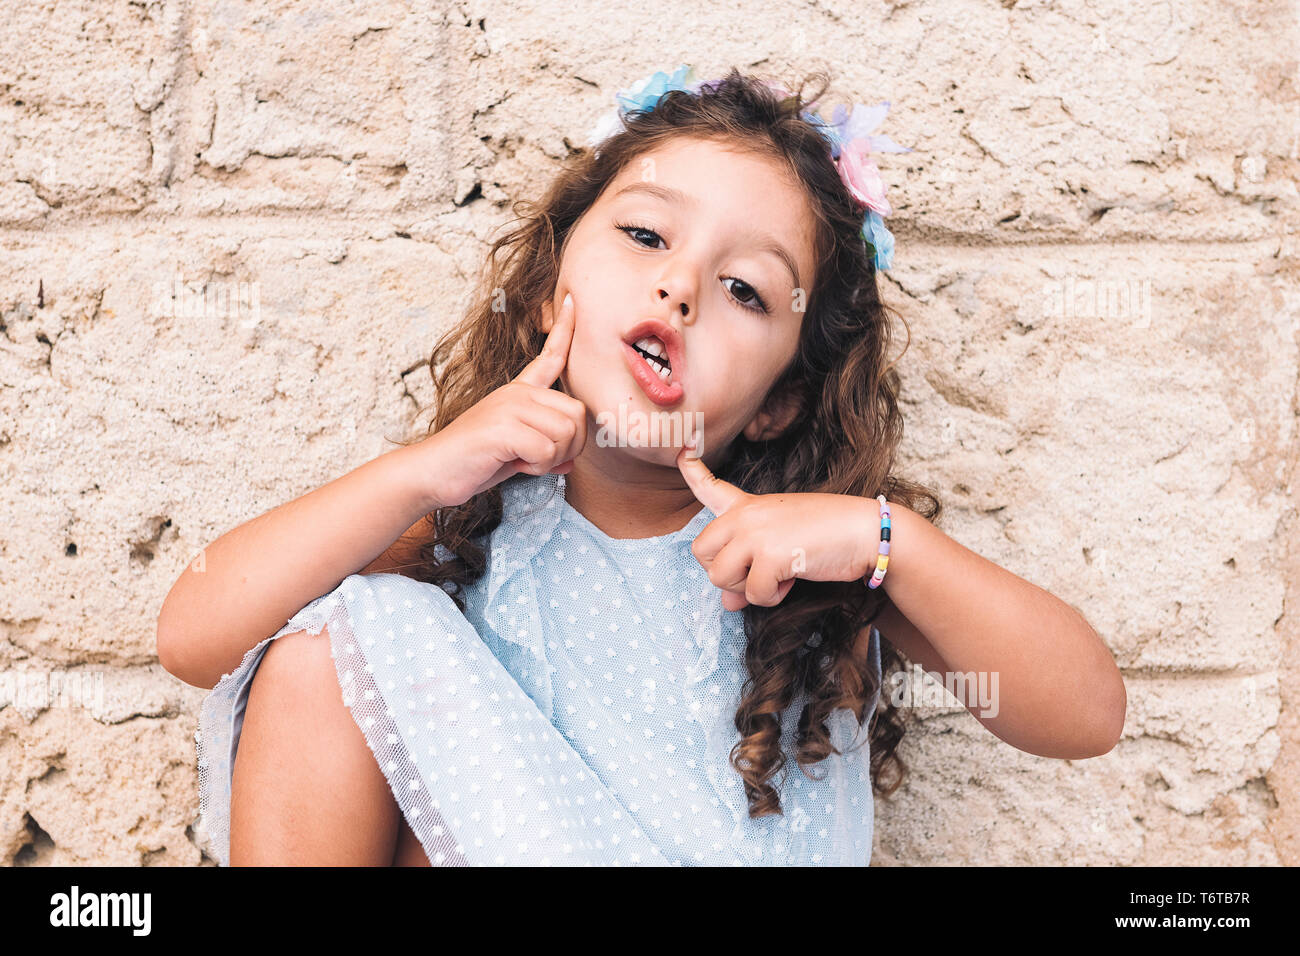 little girl making fun with hands and face, is in front of a stone wall and wears a blue dress and a flower headband - Stock Image